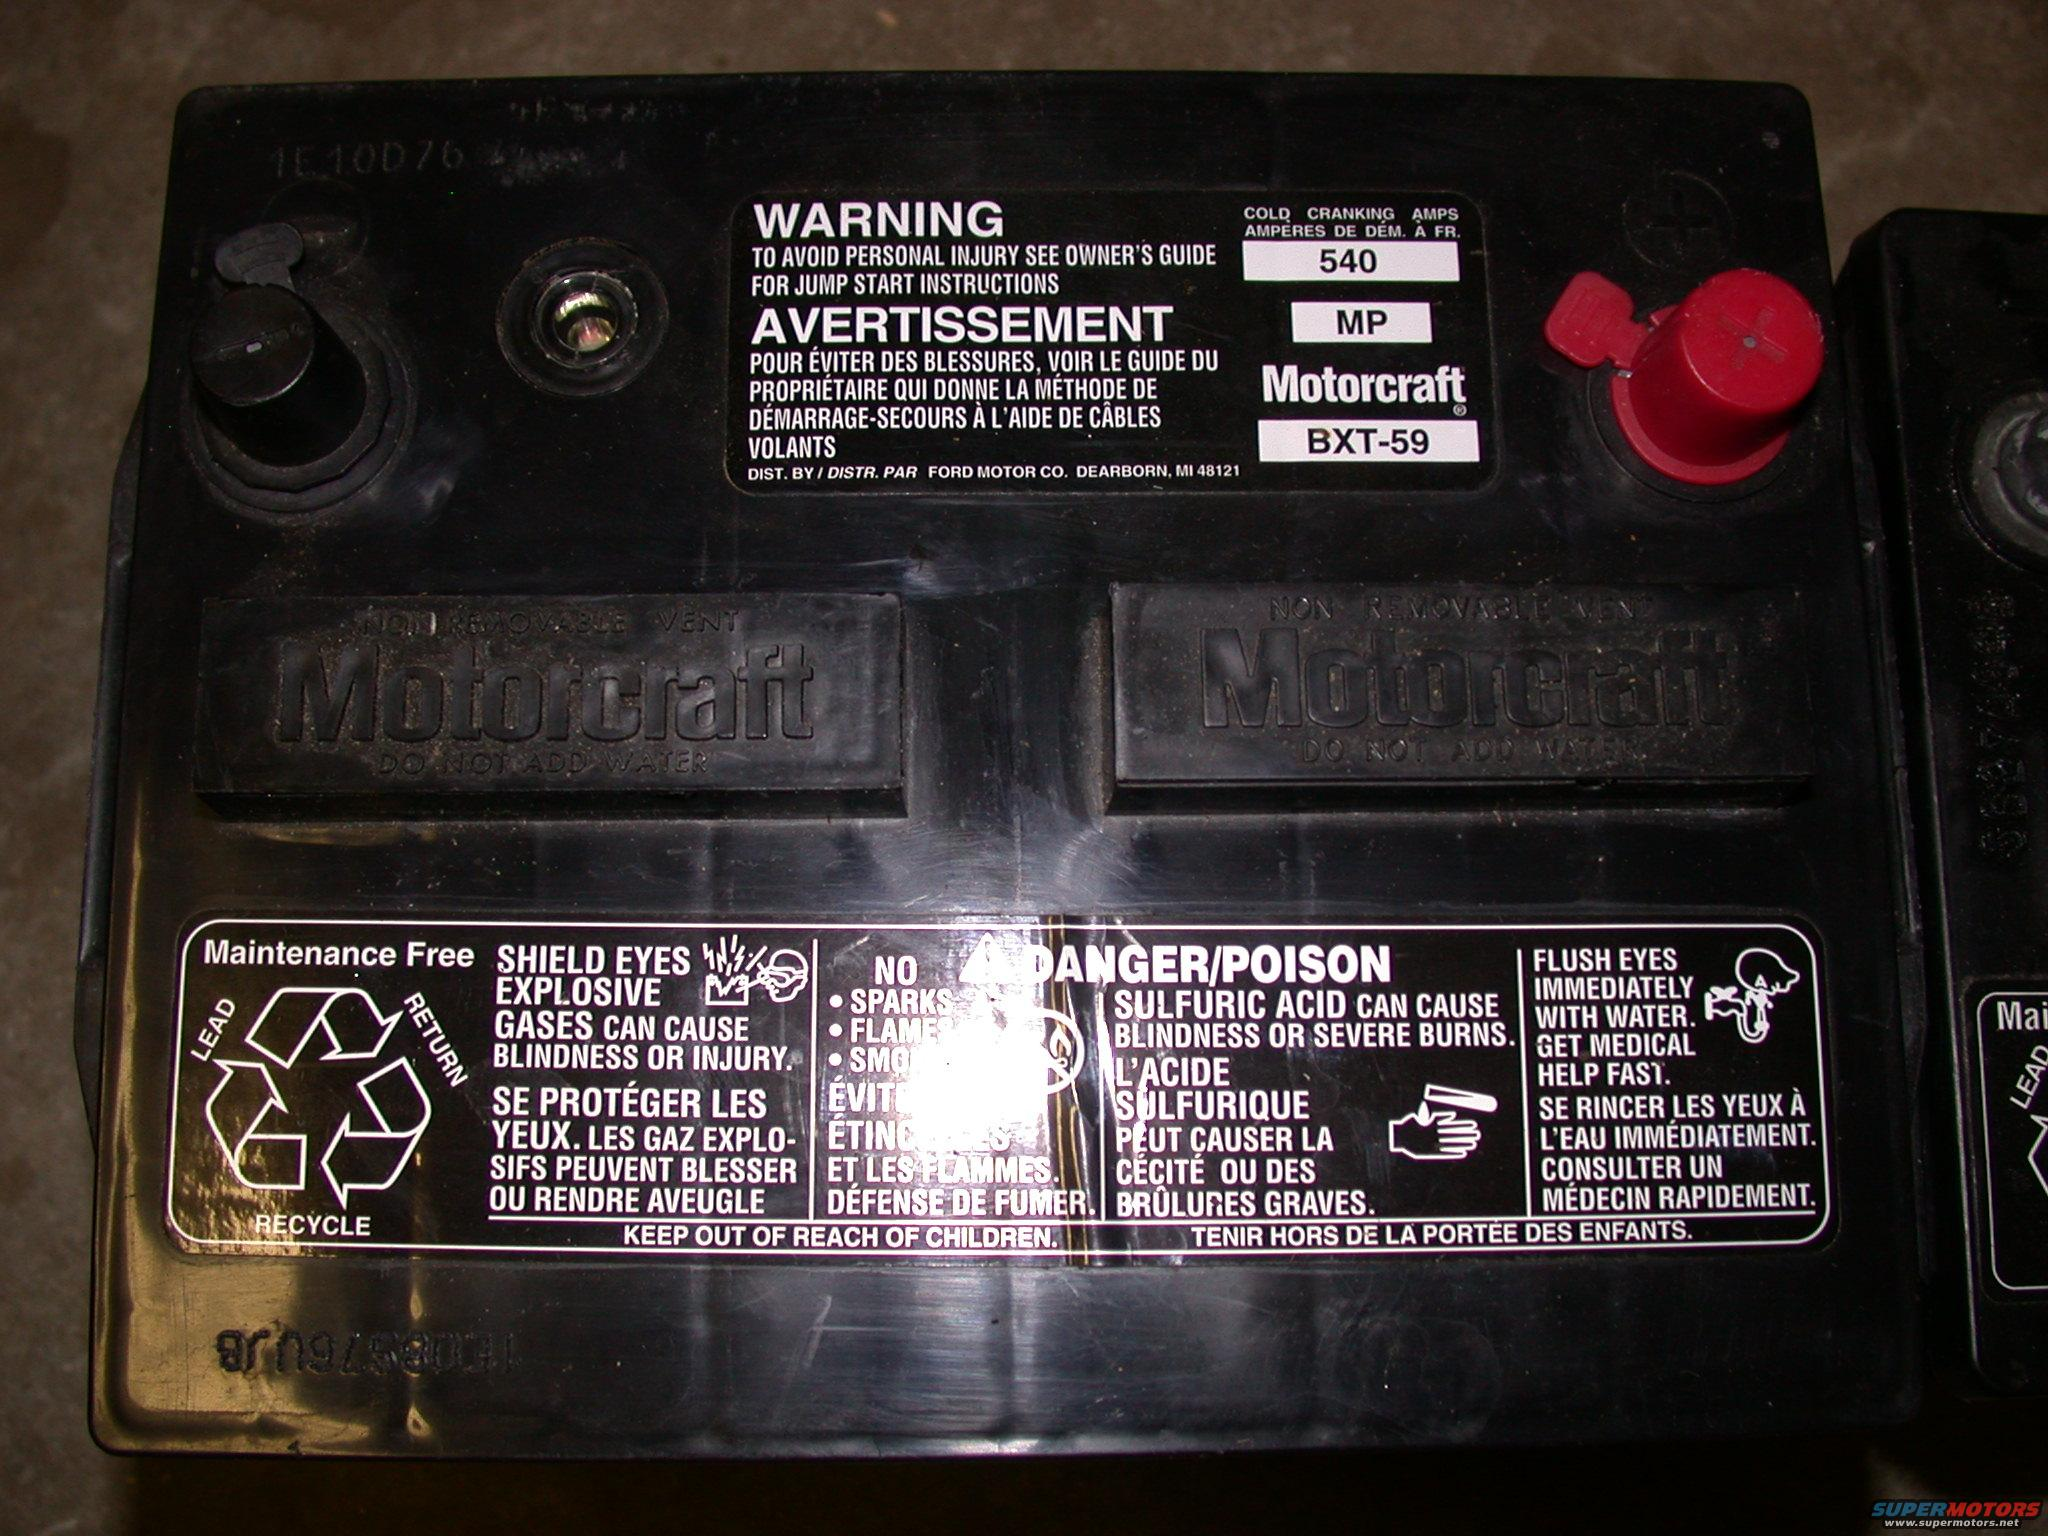 1995 Ford Mustang Cobra R Motorcraft Battery I D Picture